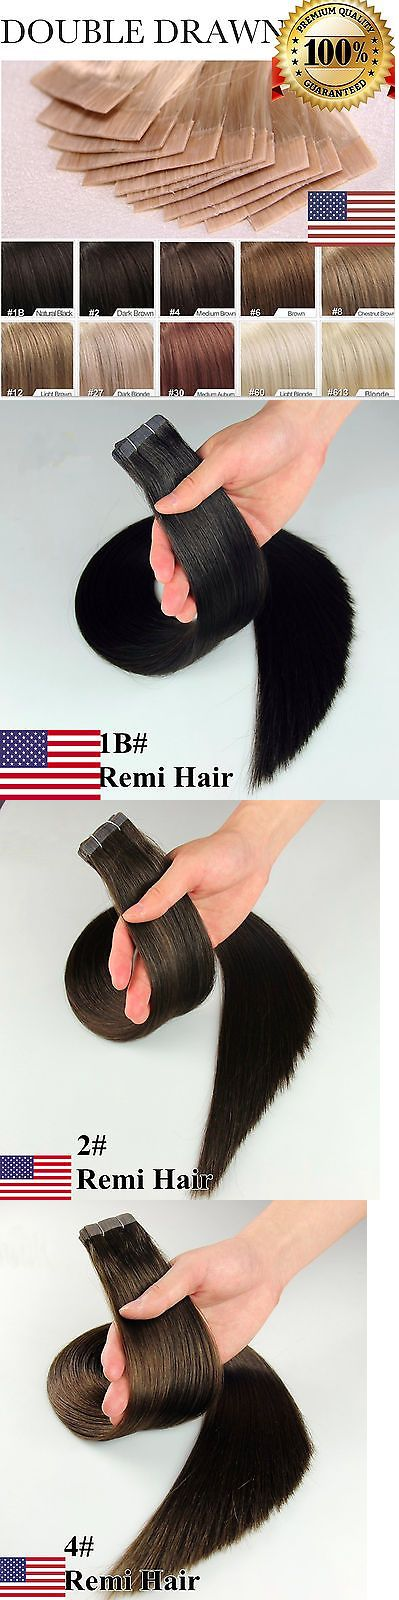 Hair Extensions: Us 7A Tape In 100% Remy Human Hair Extensions 100% Skin Weft Seamless 16 -24 -> BUY IT NOW ONLY: $52.18 on eBay!